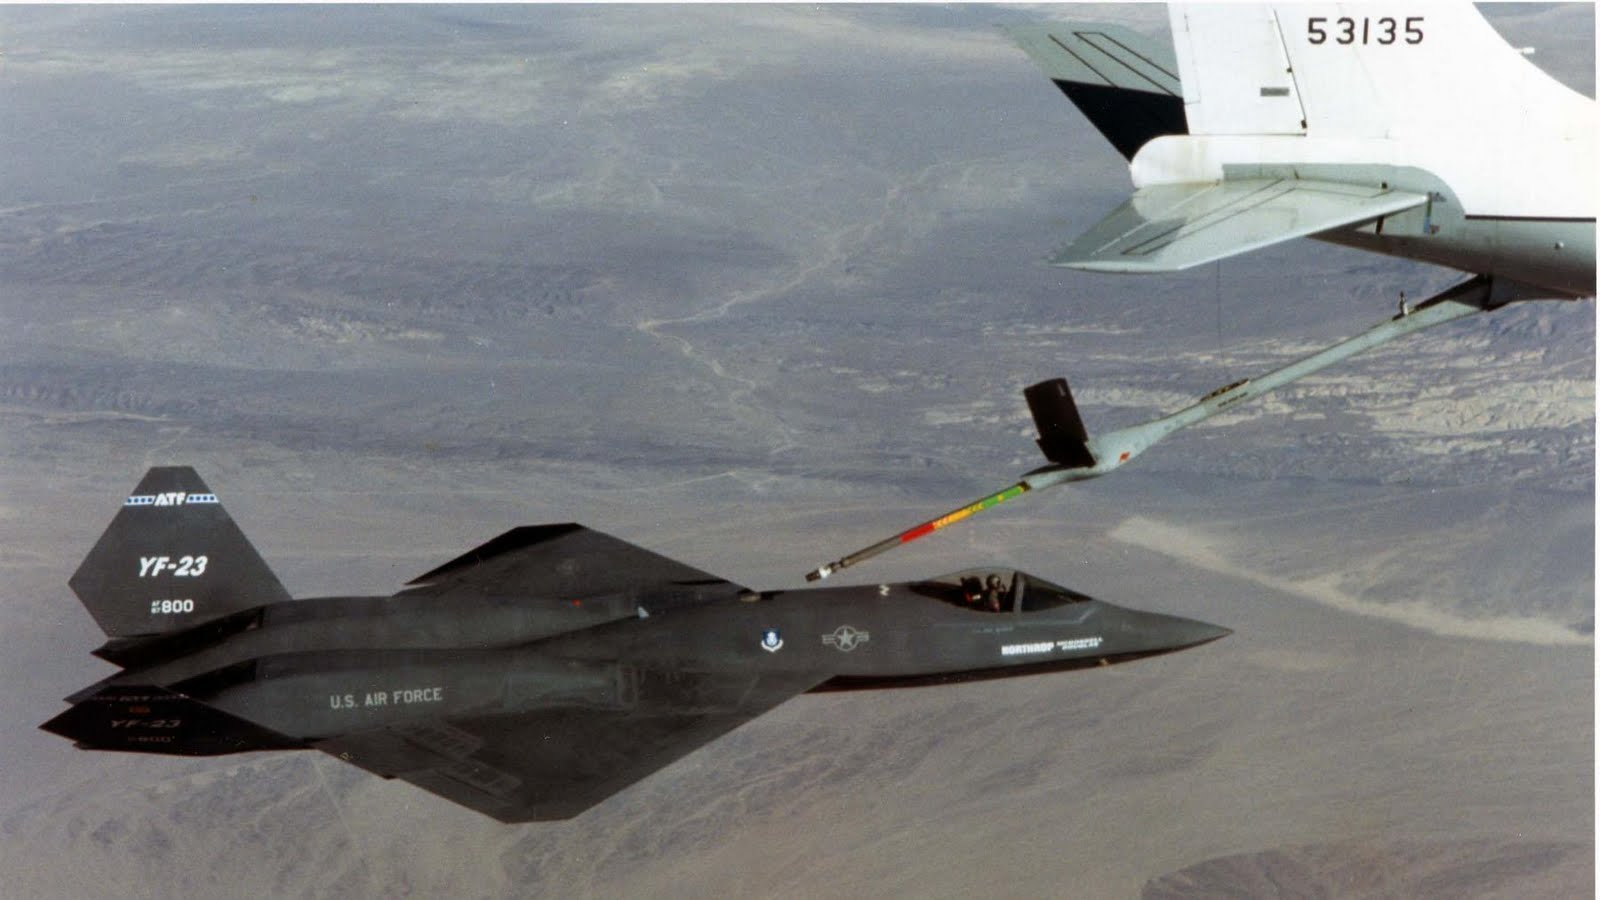 http://1.bp.blogspot.com/_ja676MG45Zg/S_qYM4nBqXI/AAAAAAAADek/41I_va3cUSw/s1600/yf-23-refueling-in-the-air.jpg